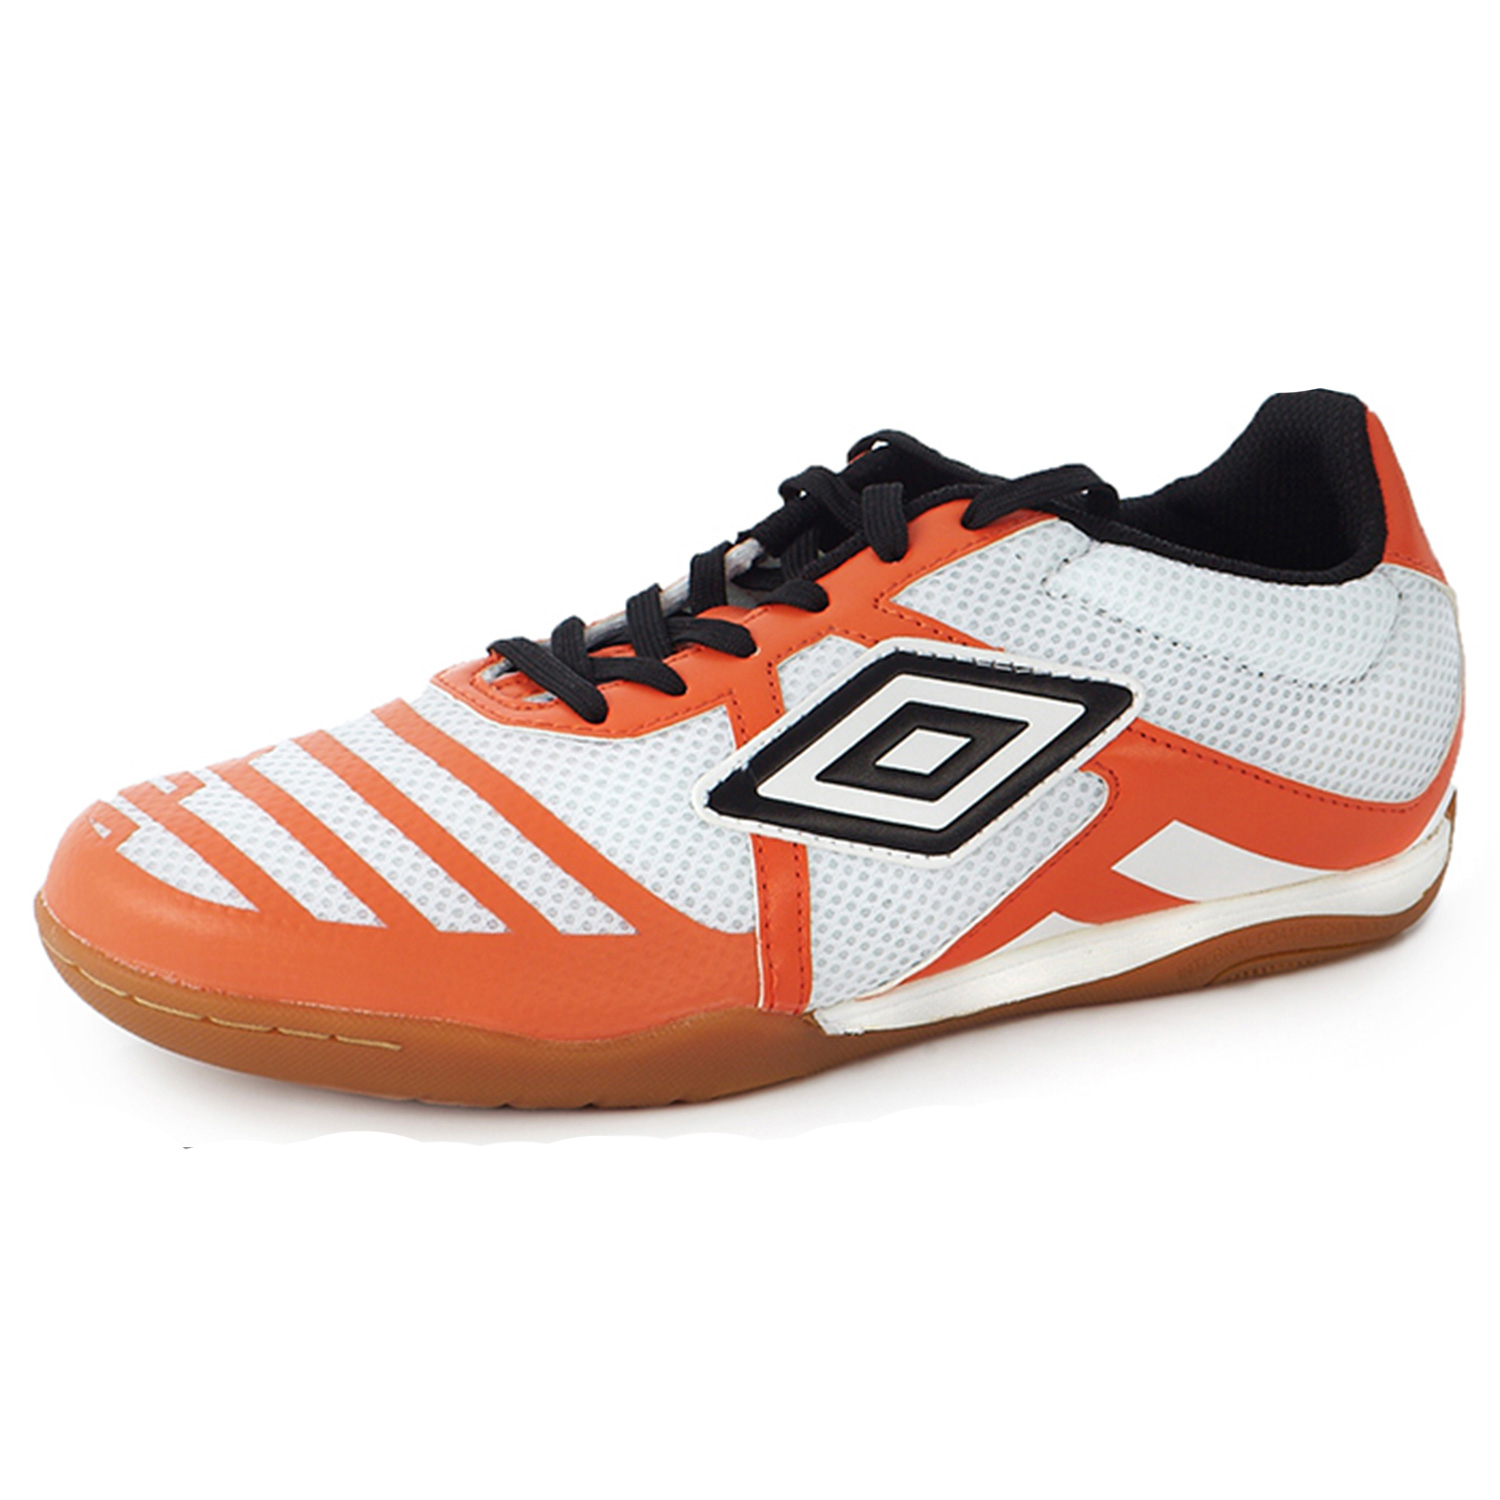 UMBRO VISION LEAGUE 3 80937U